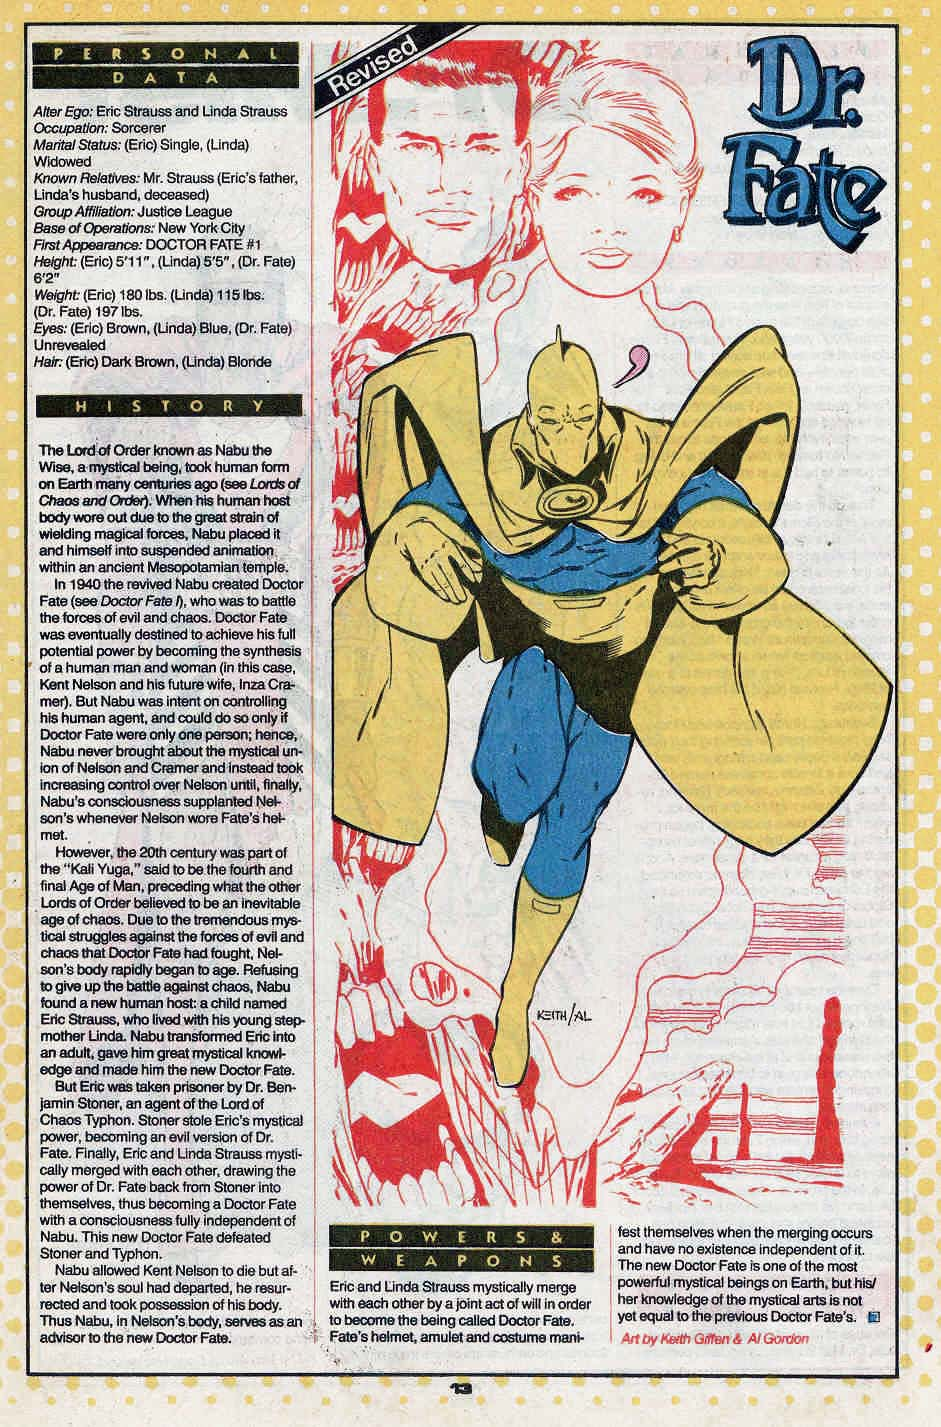 Doctor Fate by Keith Giffen and Al Gordon